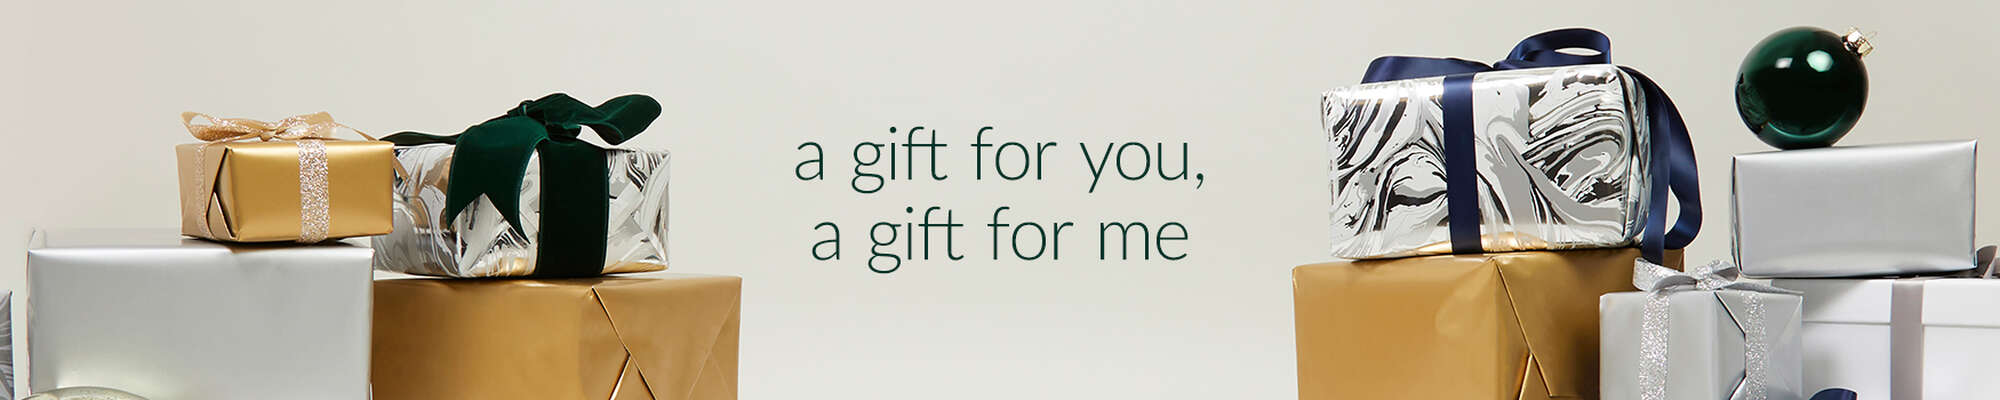 'a gift for you